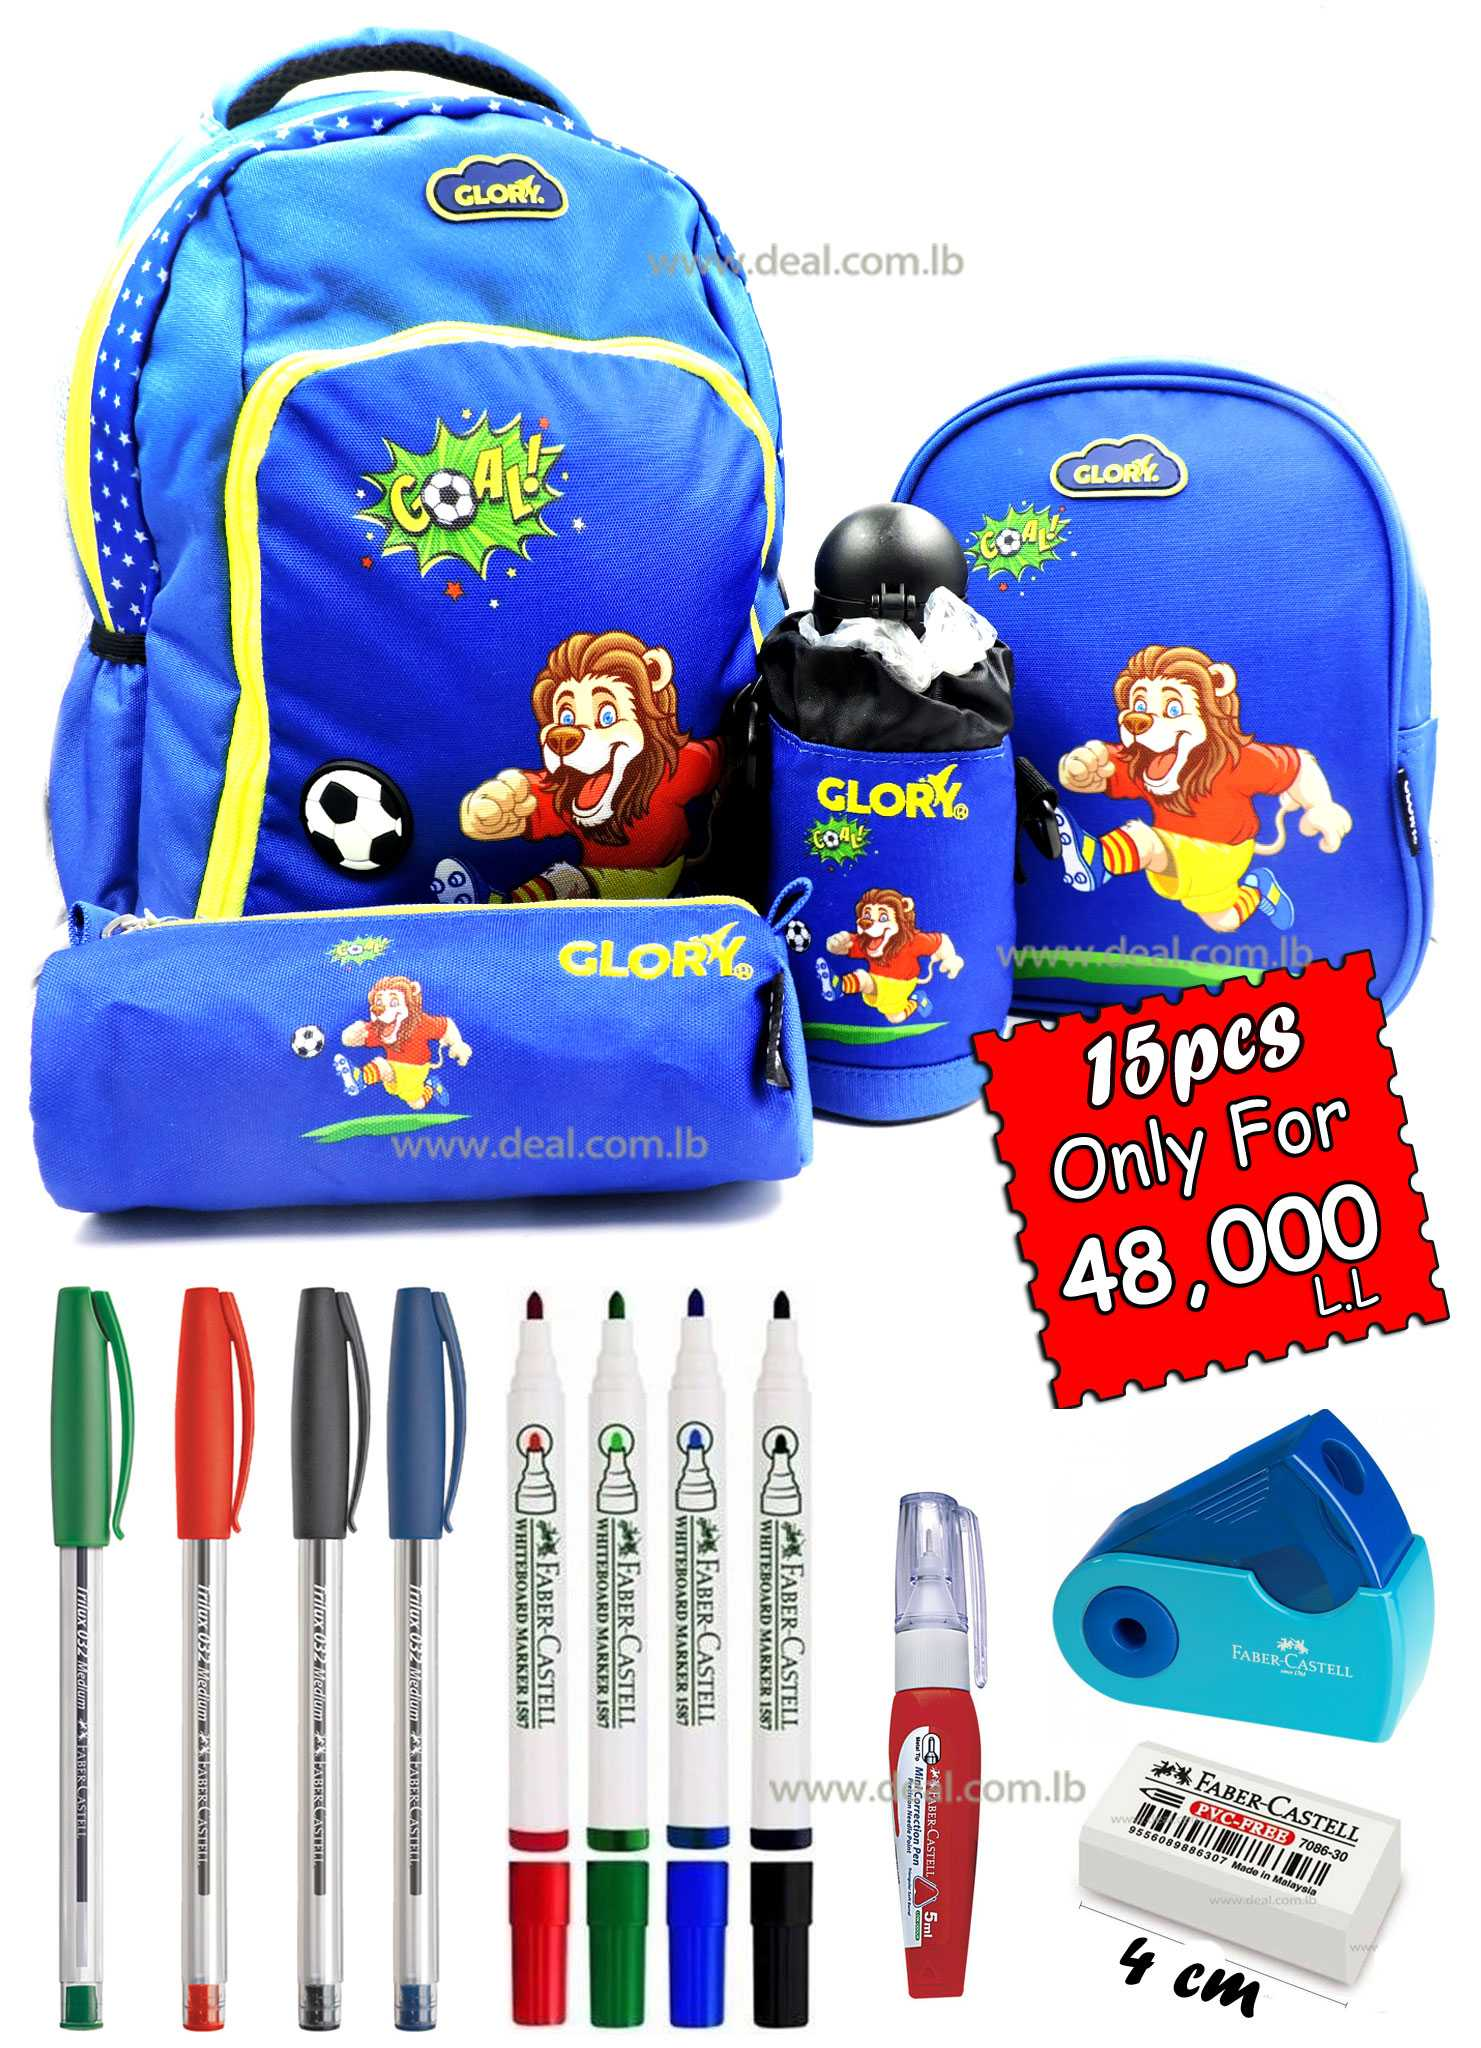 Special Deal Glory Loin School Bag Set With Stationary Products